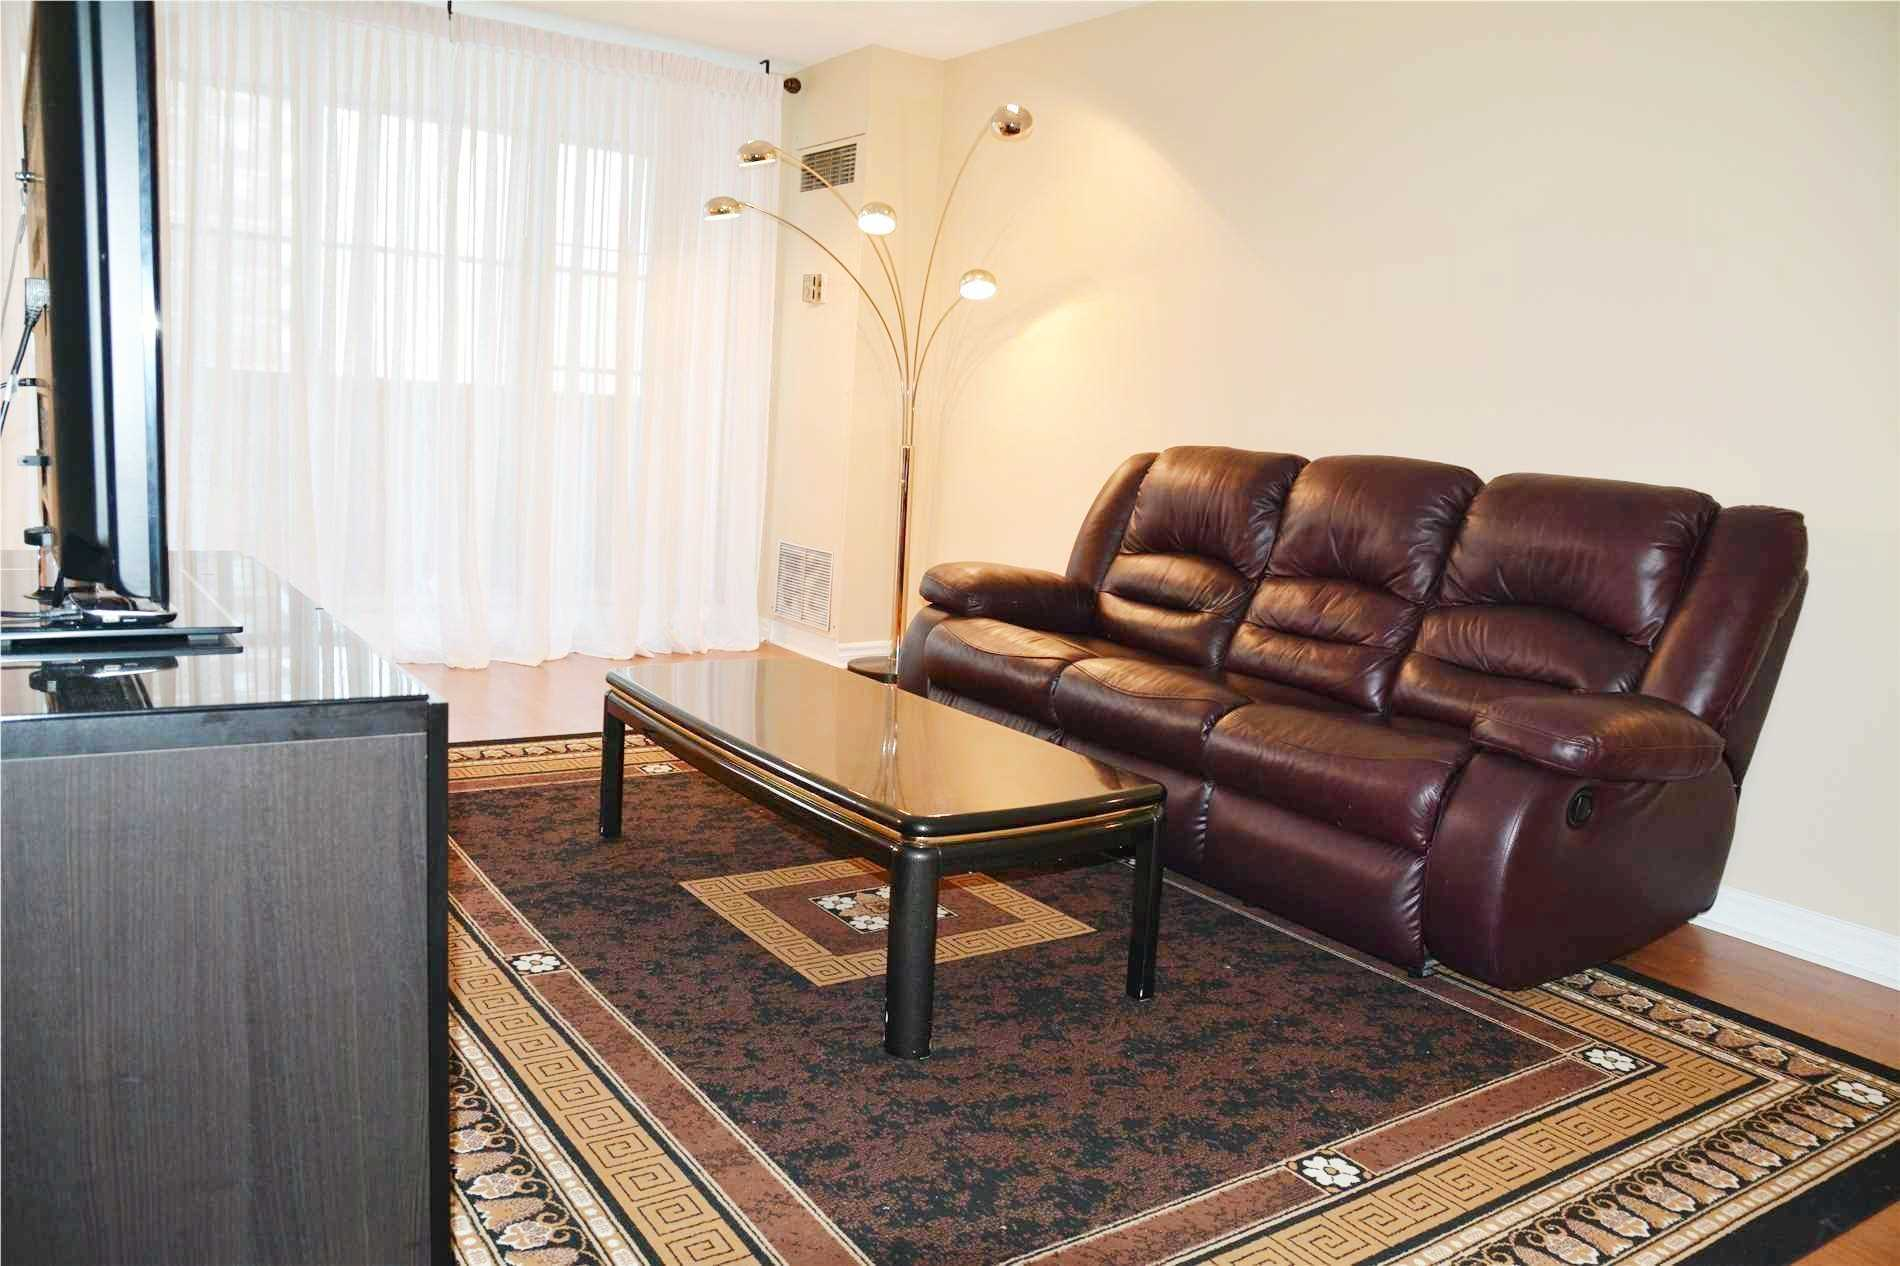 Image 7 of 14 showing inside of 3 Bedroom Condo Apt Apartment for Lease at 205 Hilda Ave Unit# 2104, Toronto M2M4B1